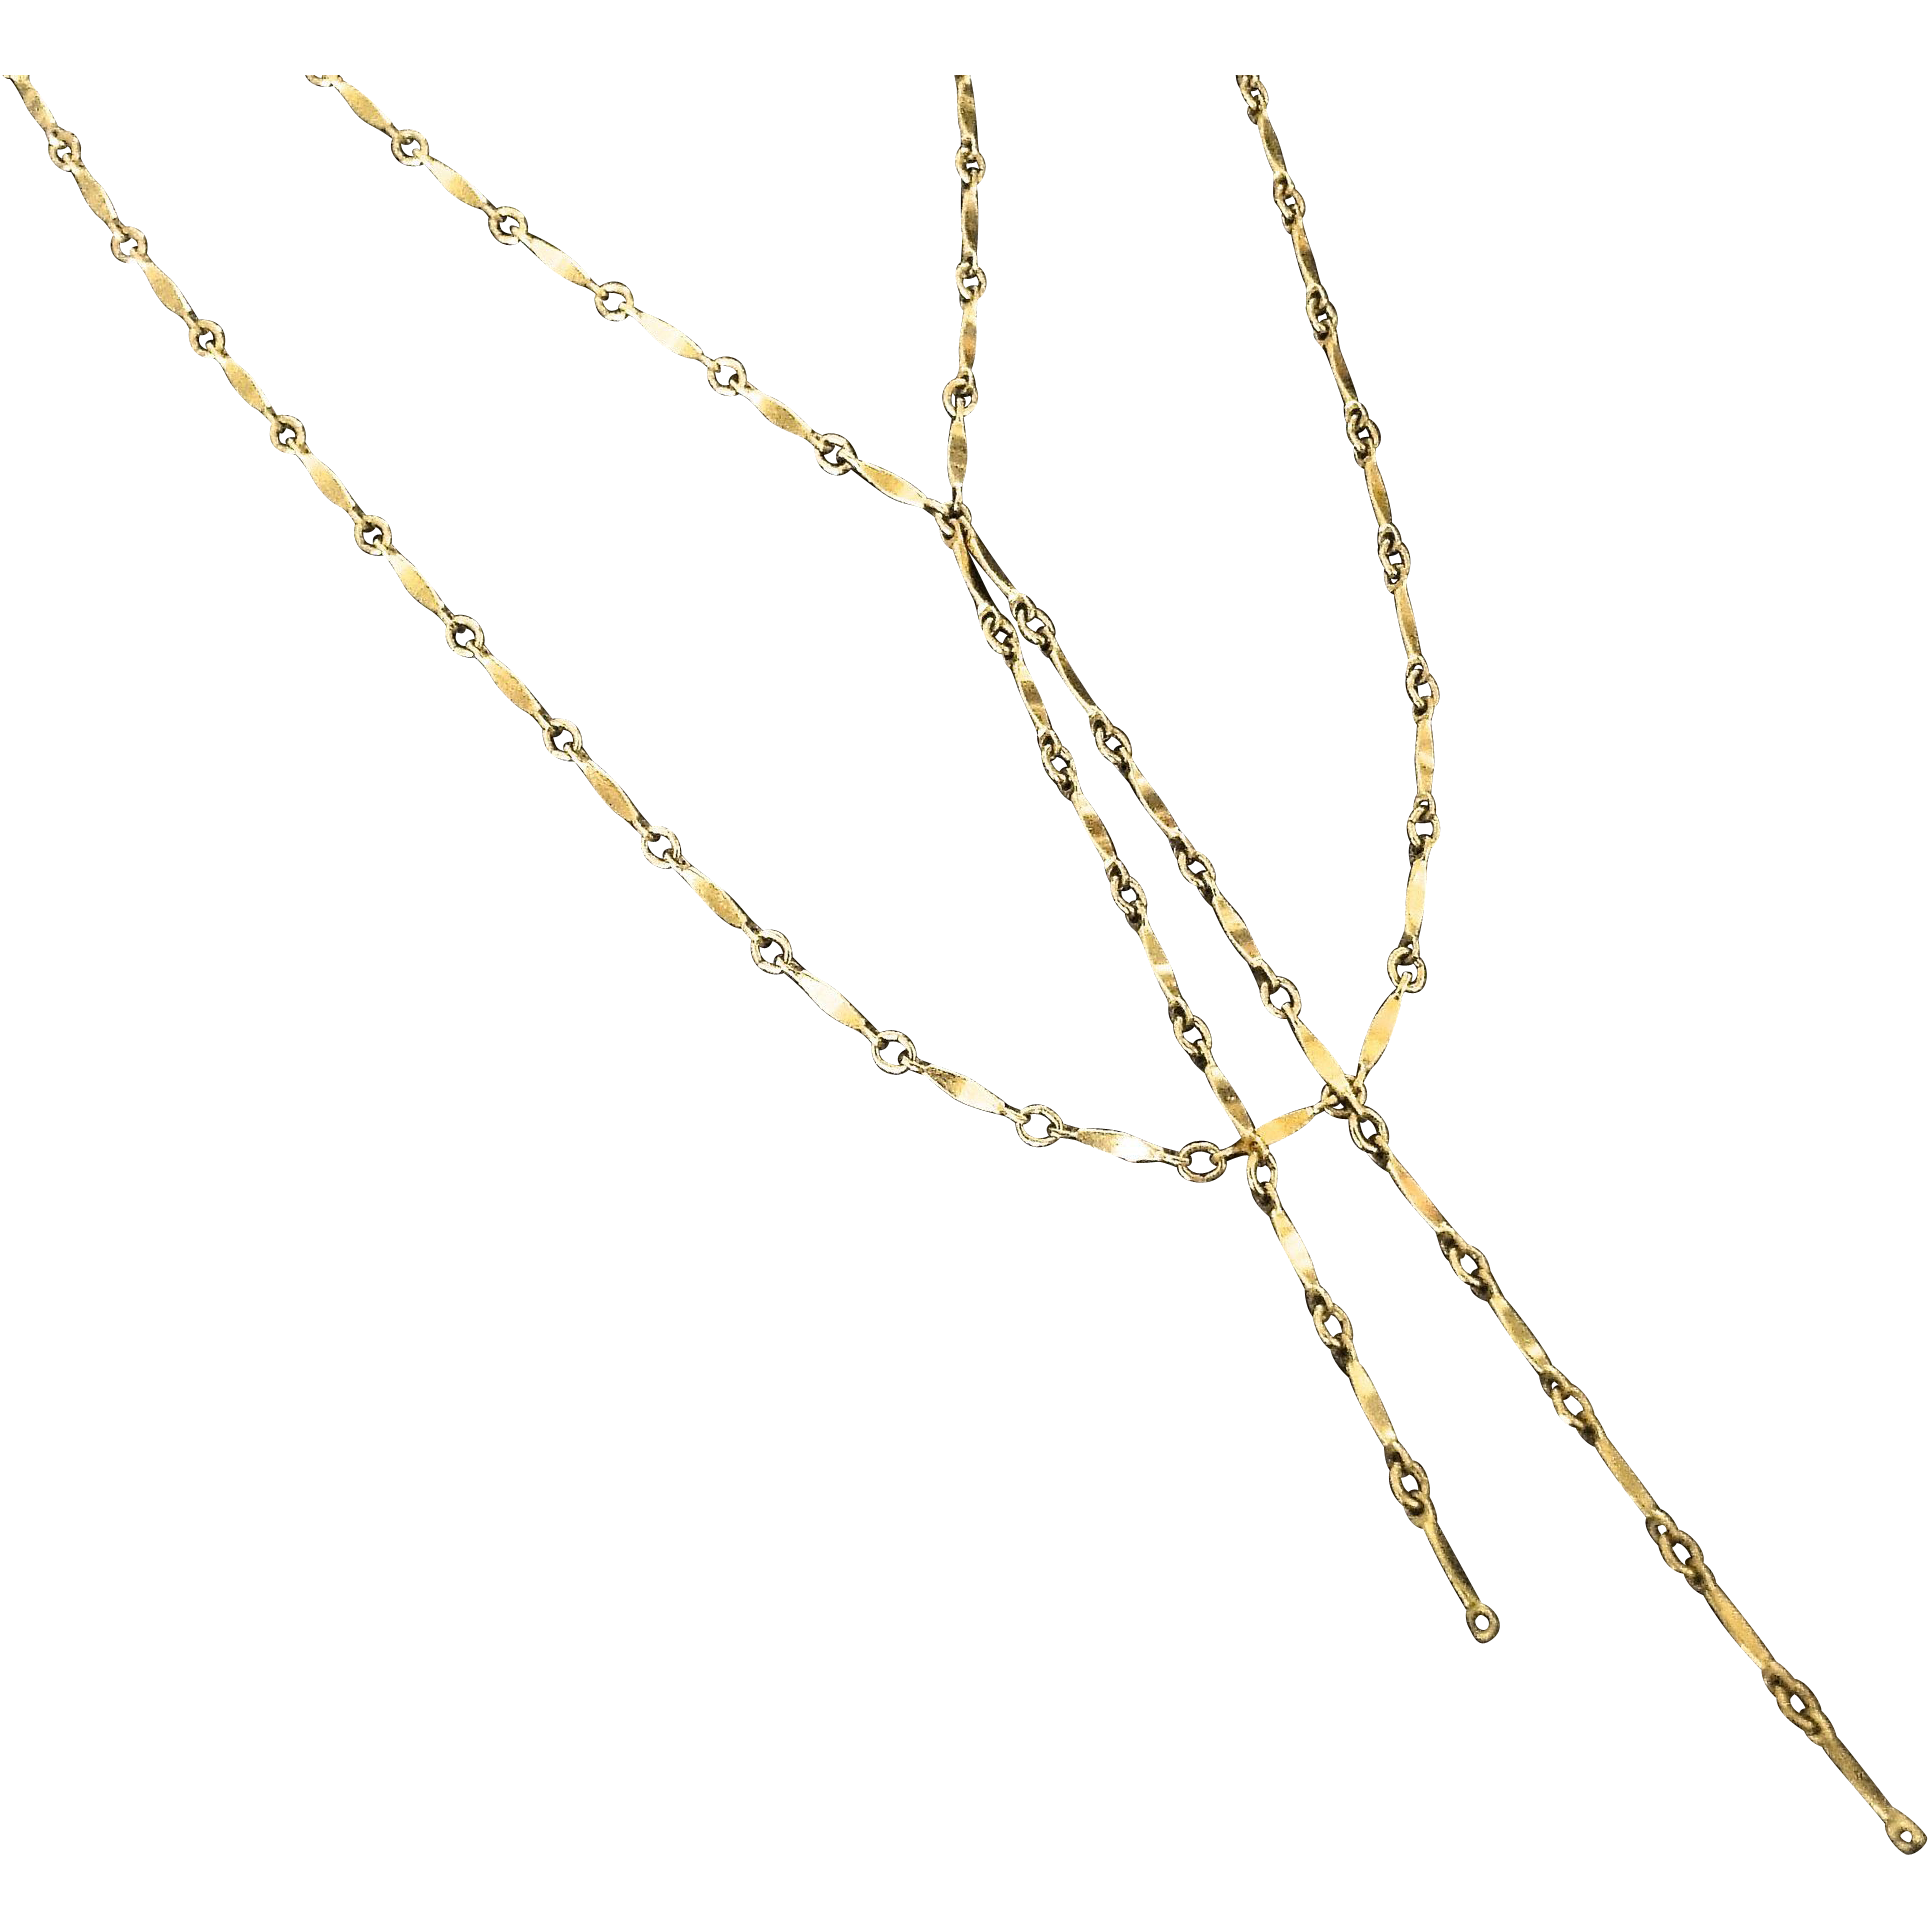 Gold Lariat Necklace, Y Necklace, Tassel Necklace, Double Lariat Necklace as Seen On Cameron Diaz